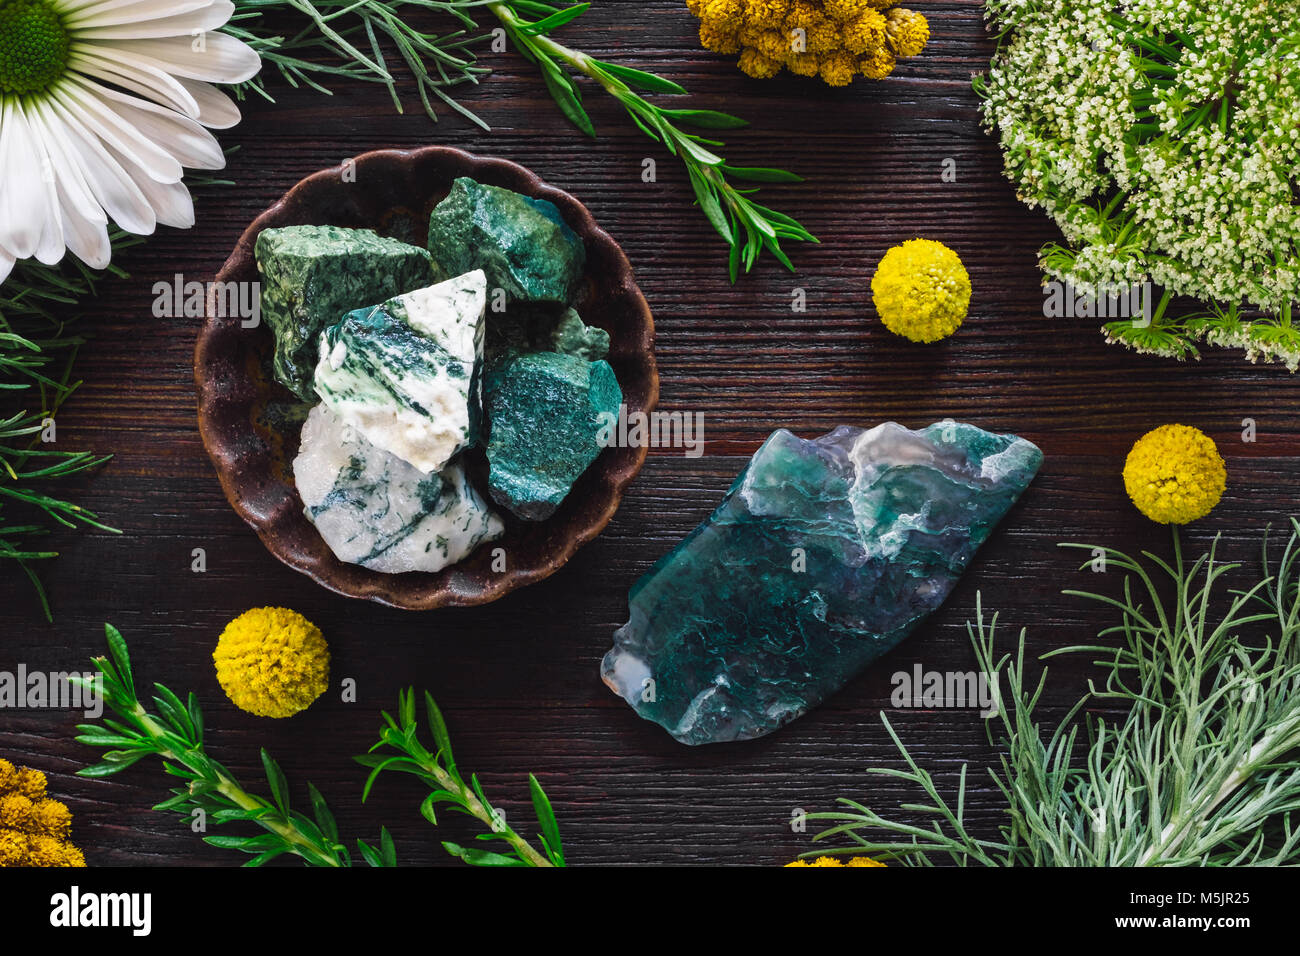 Tree Agate and Moss Agate with Mixed Botanicals on Dark Table - Stock Image